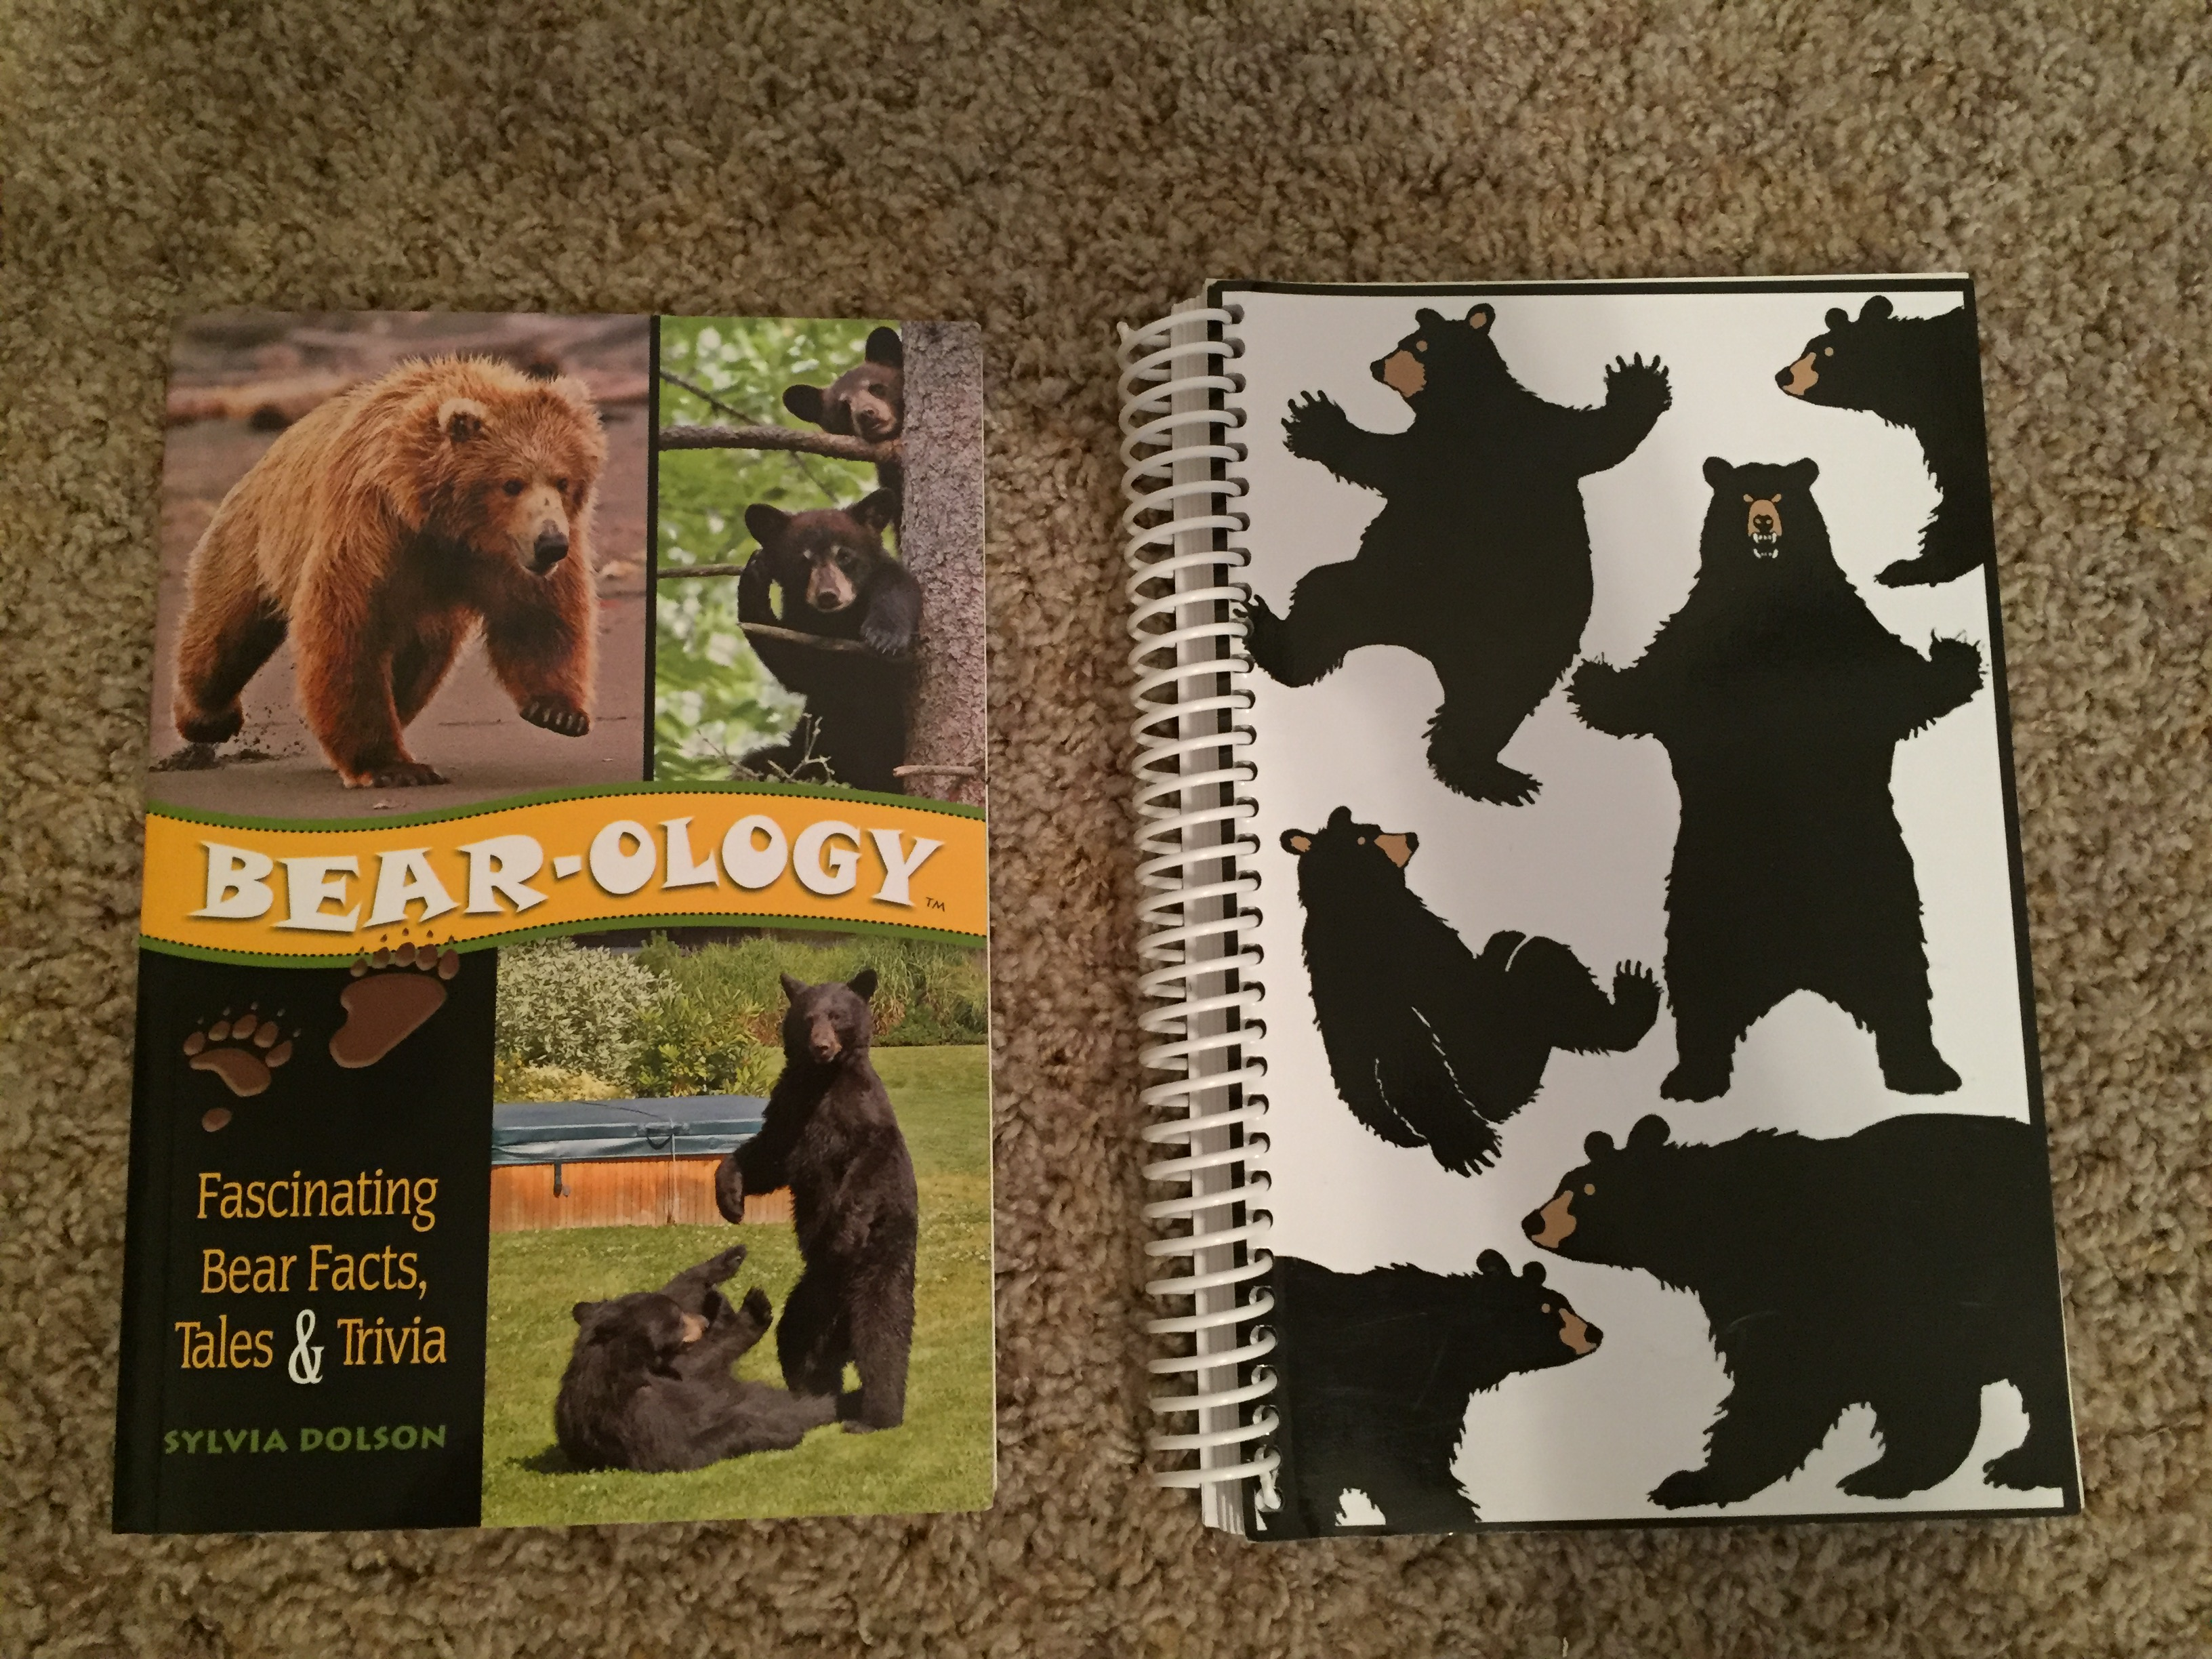 """Bear-ology"" - fascinating bear facts, tale & trivia - paperback & bear design blank journal/sketchbook - both excellent condition to like"